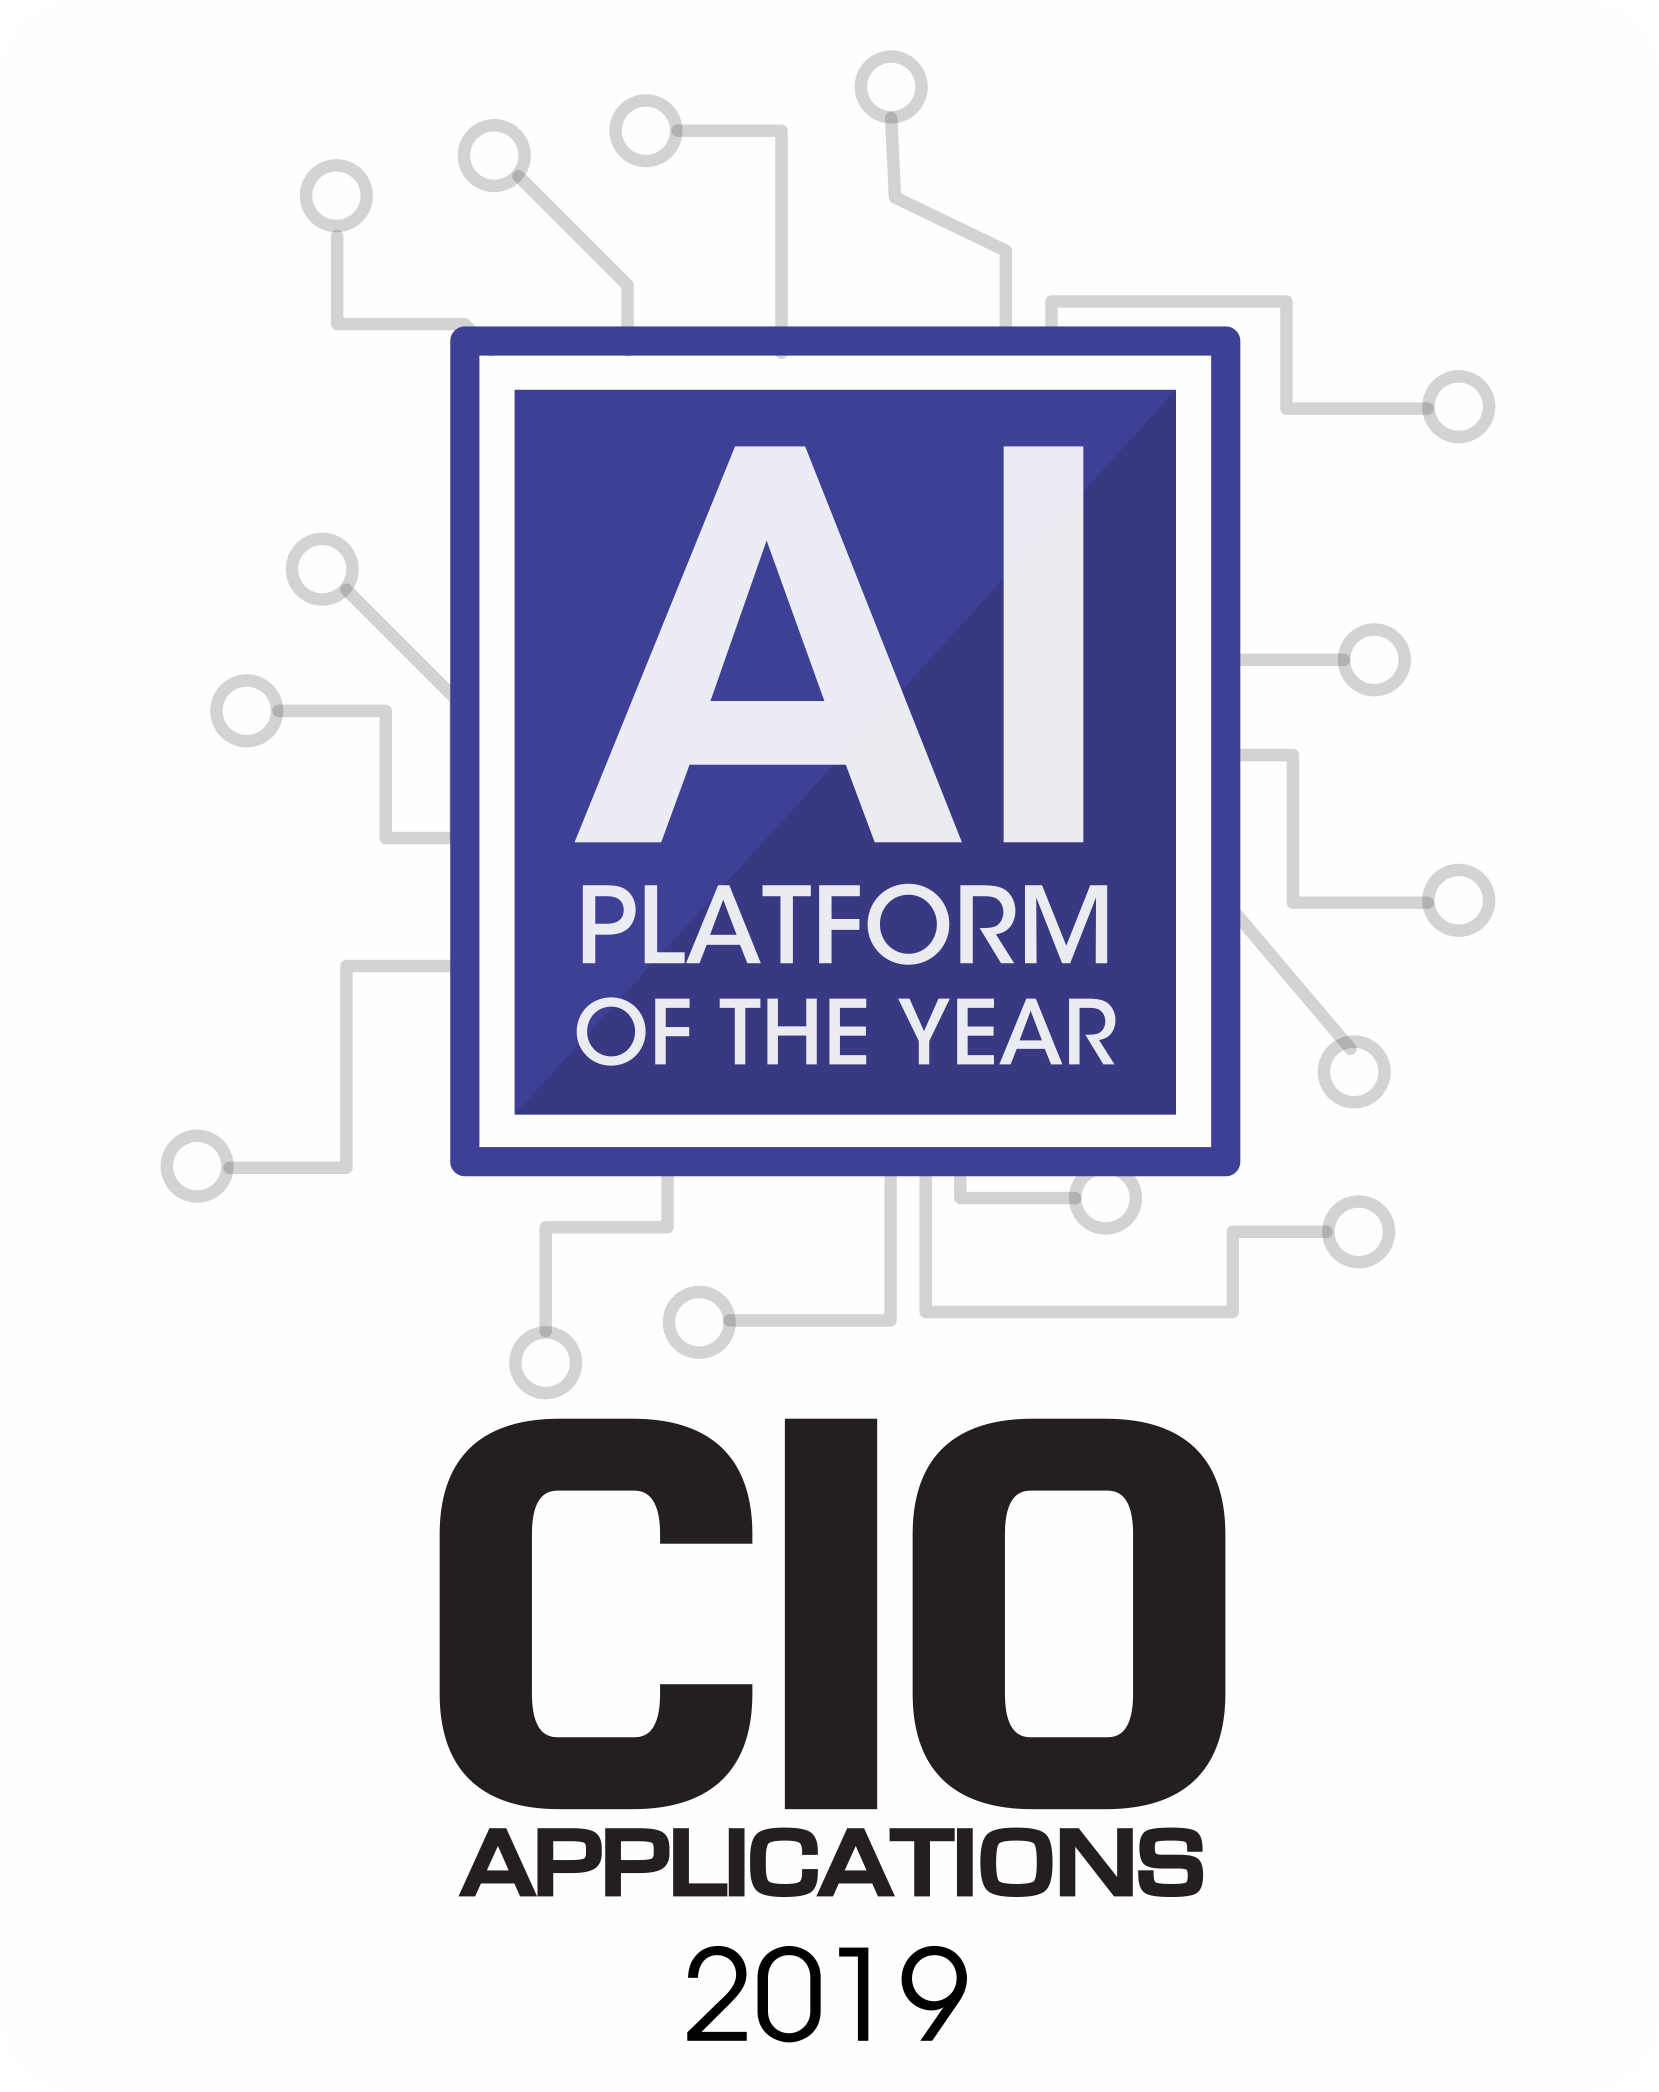 John Snow Labs is named AI Platform of the Year 2019 by CIO Applications